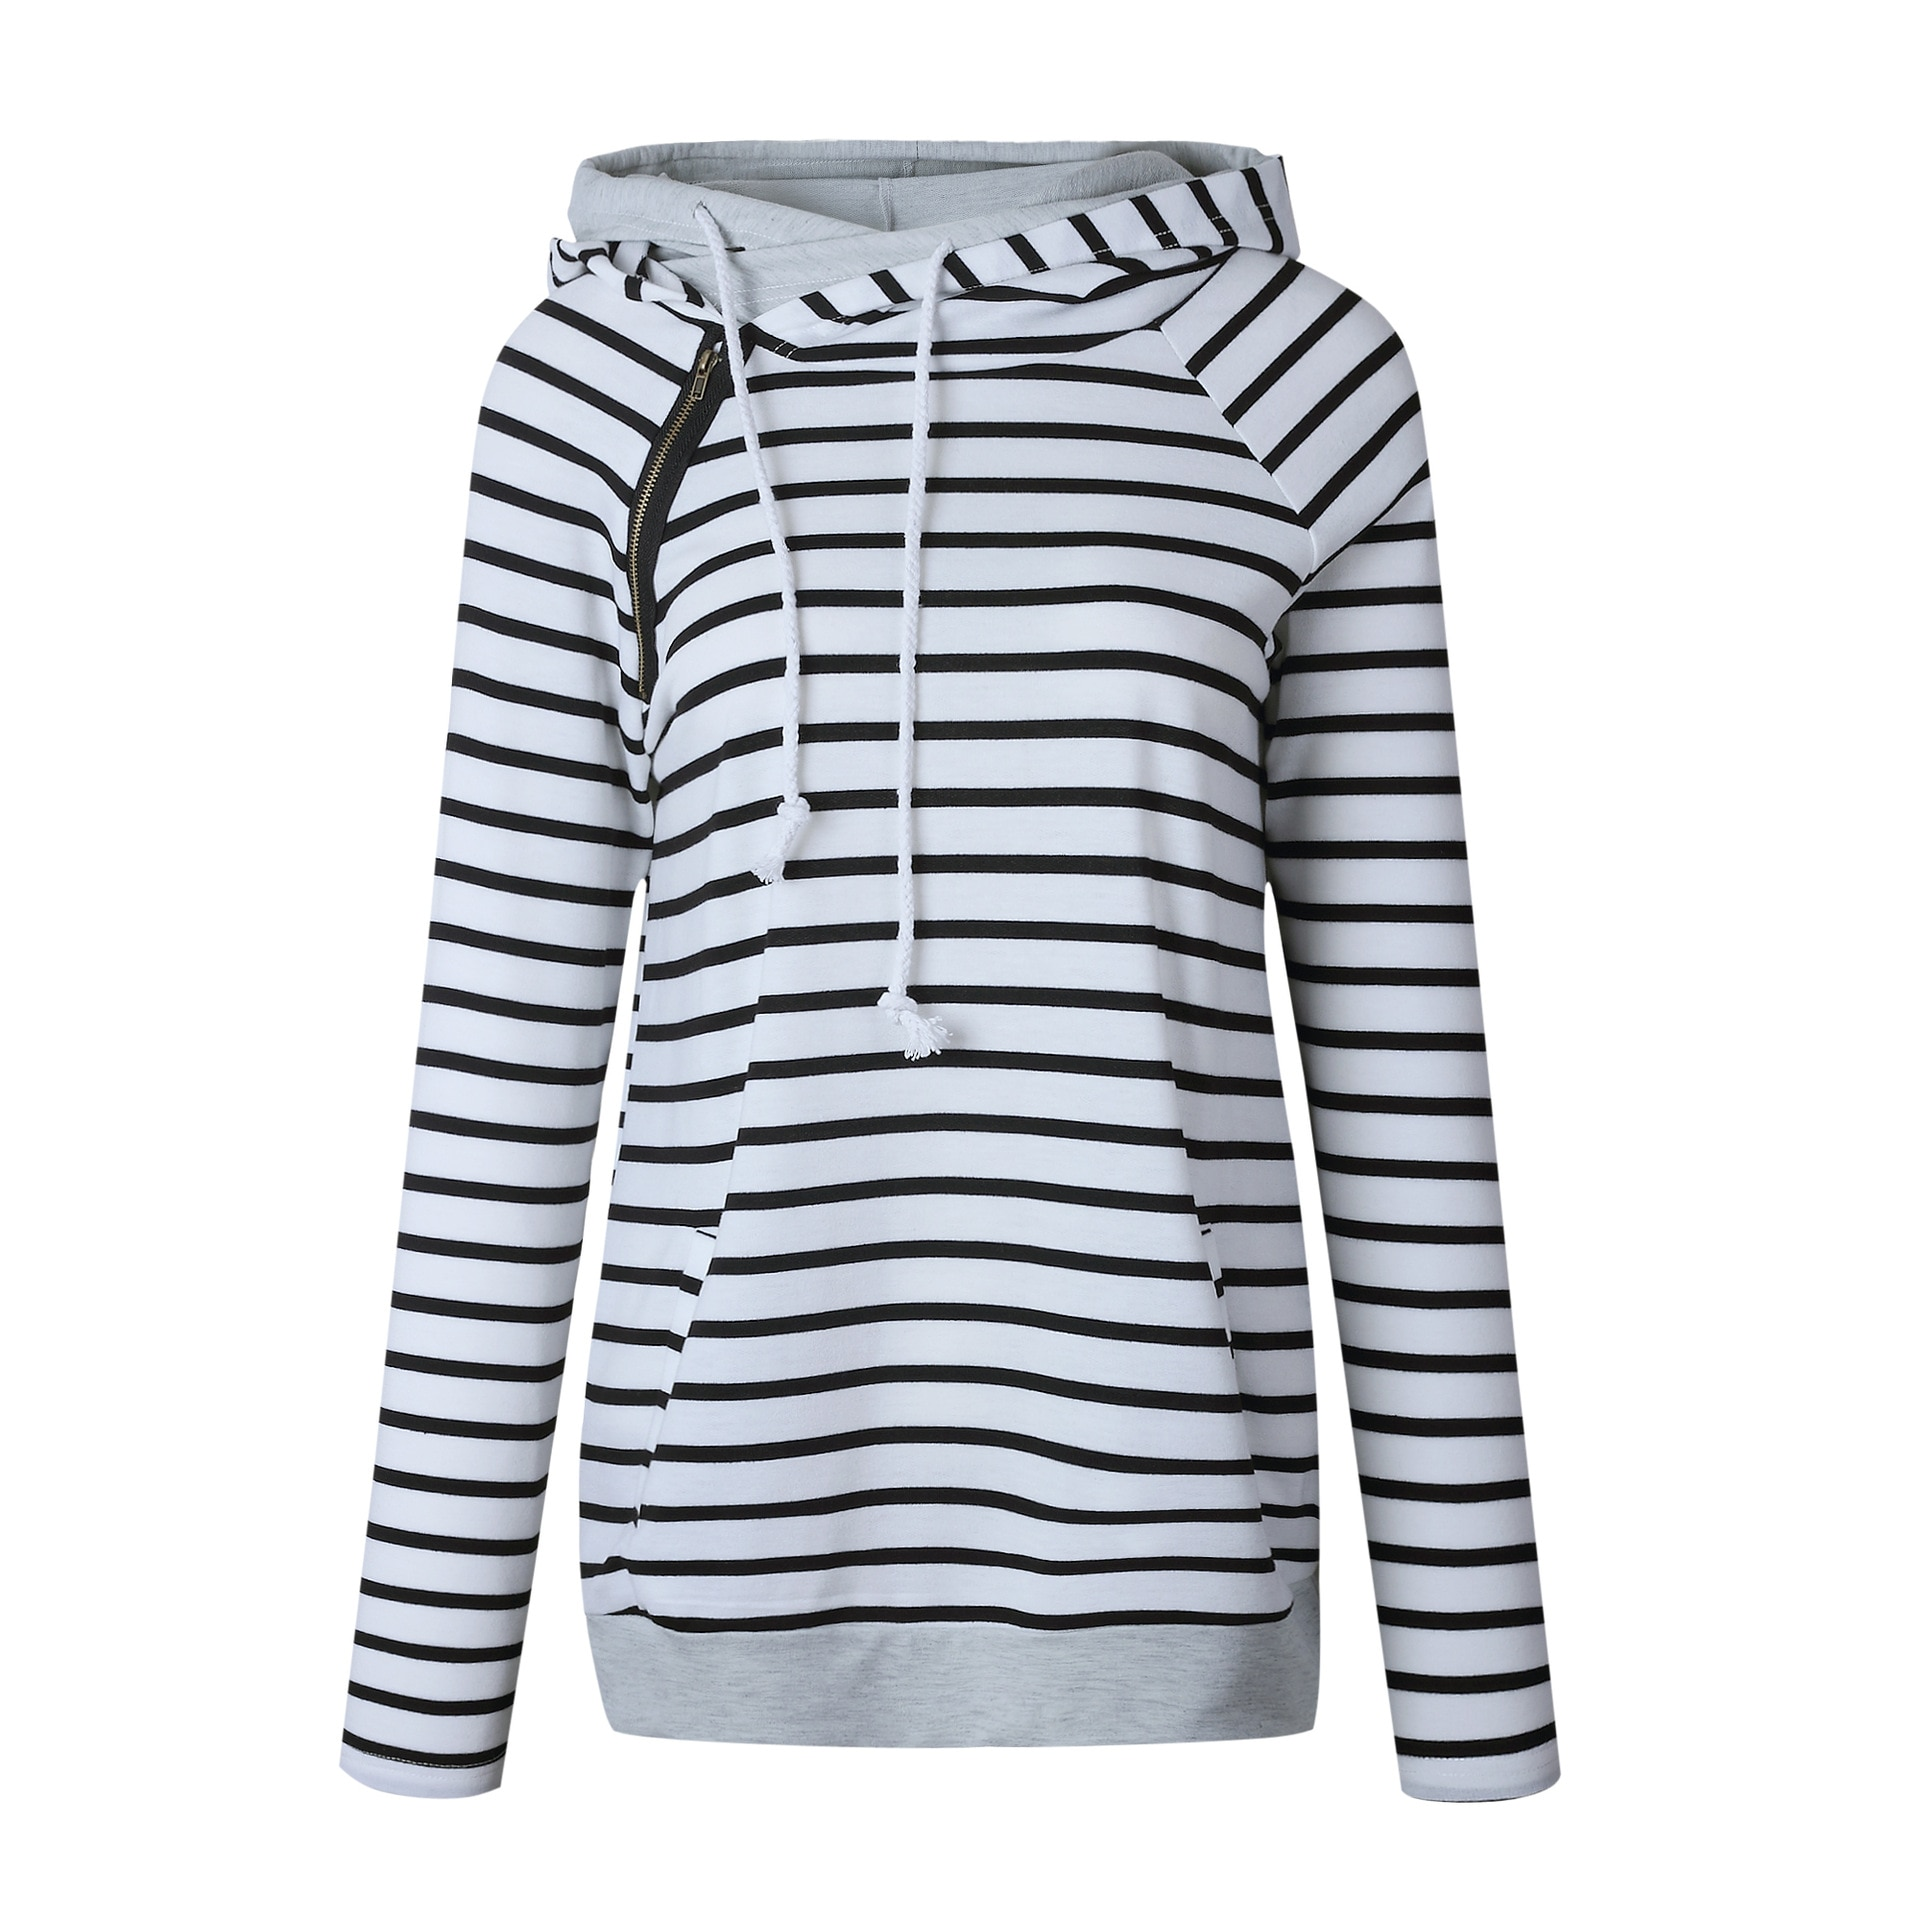 Women's Patchwork Striped Pullover Long Sleeve Hoodie, Tops With Pockets, Hooded Sweatshirt 33